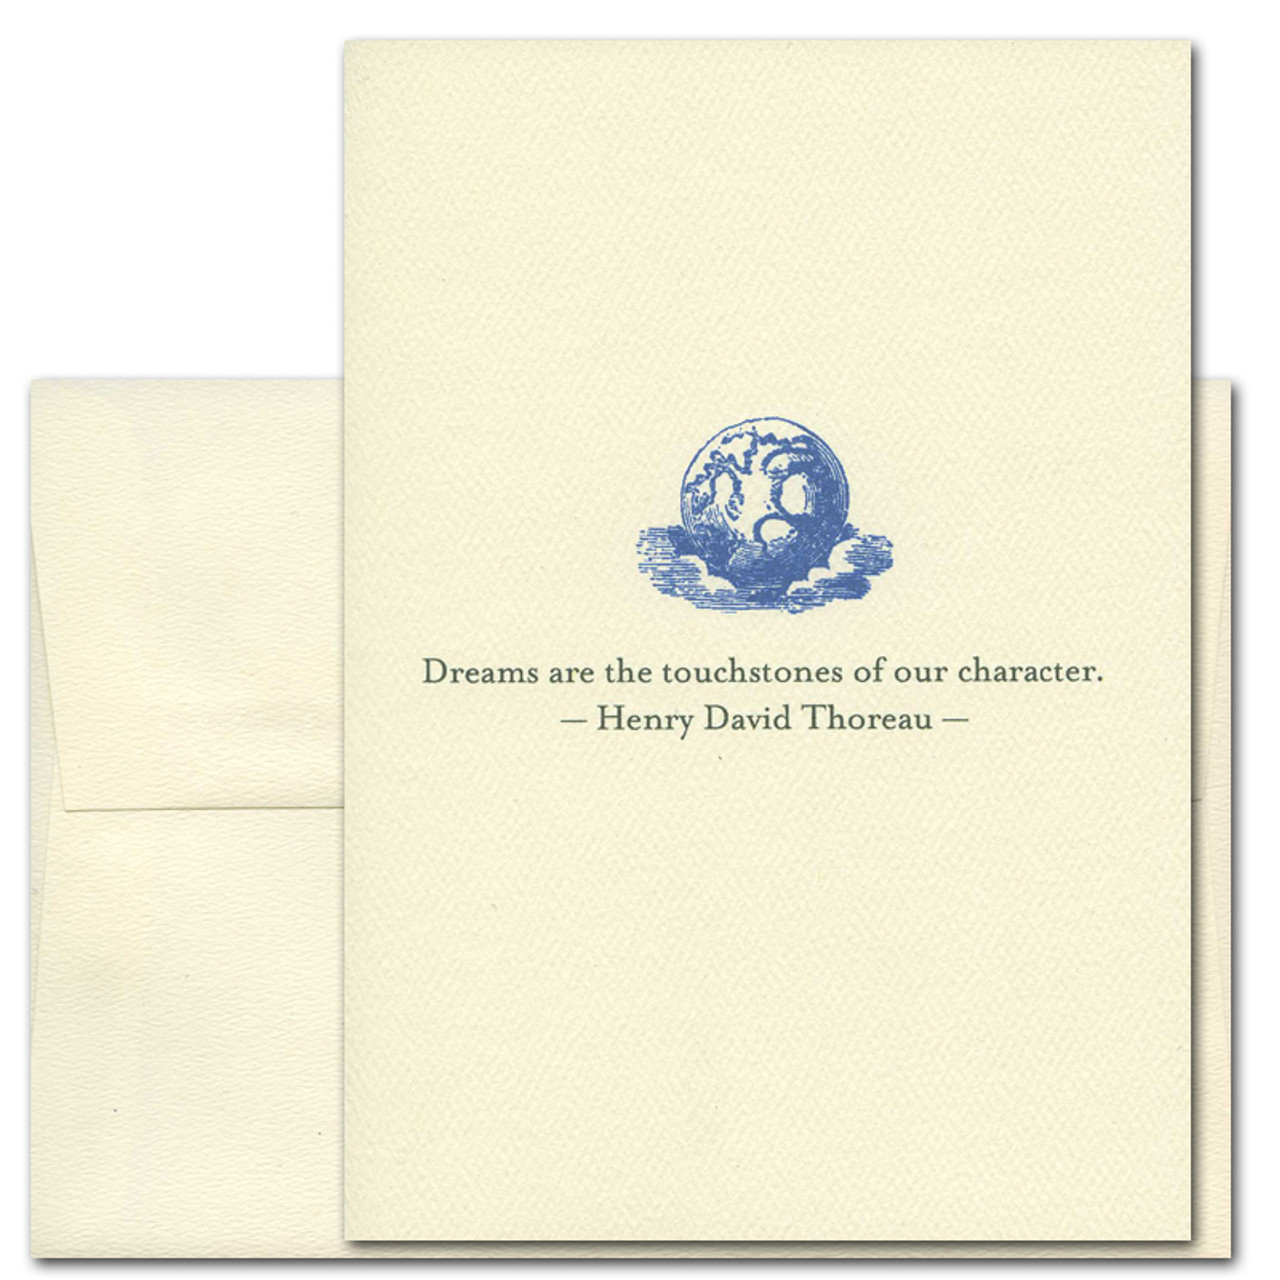 """Quotation Card """"Dreams: Thoreau"""" Cover shows a vintage illustration of a moon sitting on clouds with a quote from Henry David Thoreau that reads: """"Dreams are the touchstones of our character."""""""